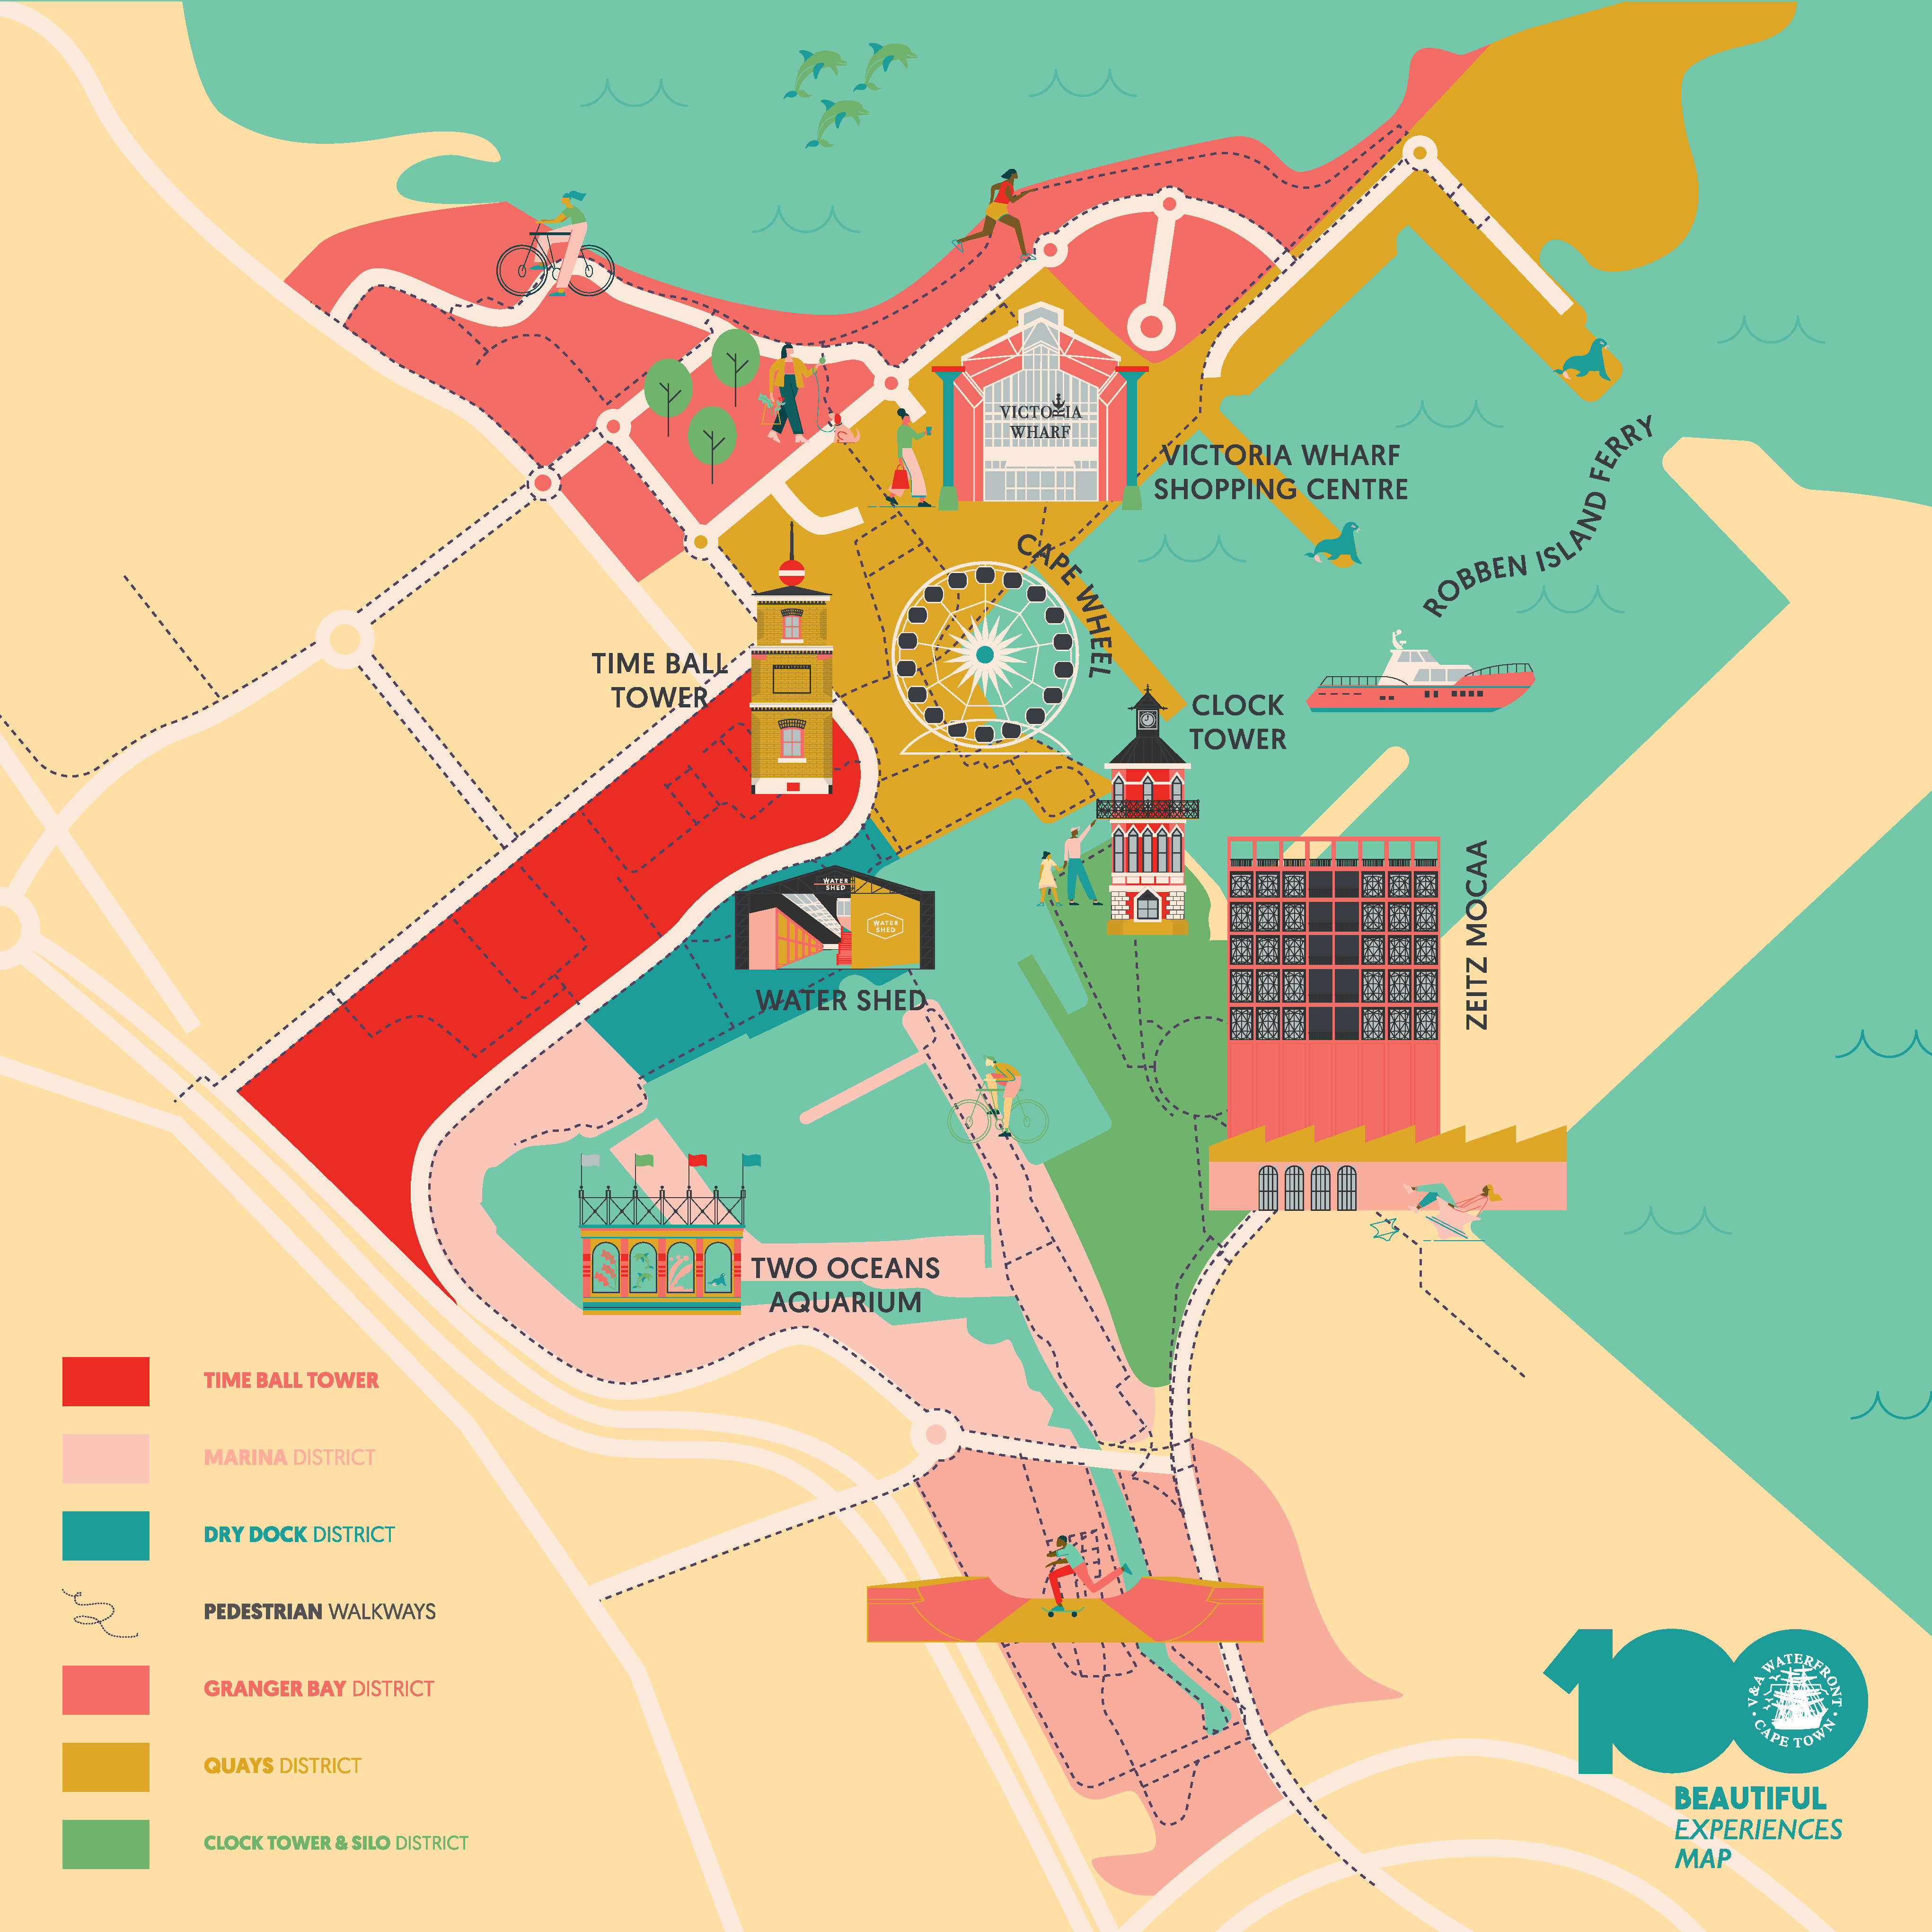 100 Beautiful Experiences Promoting Local Designers – Artists and Makers During the Covid